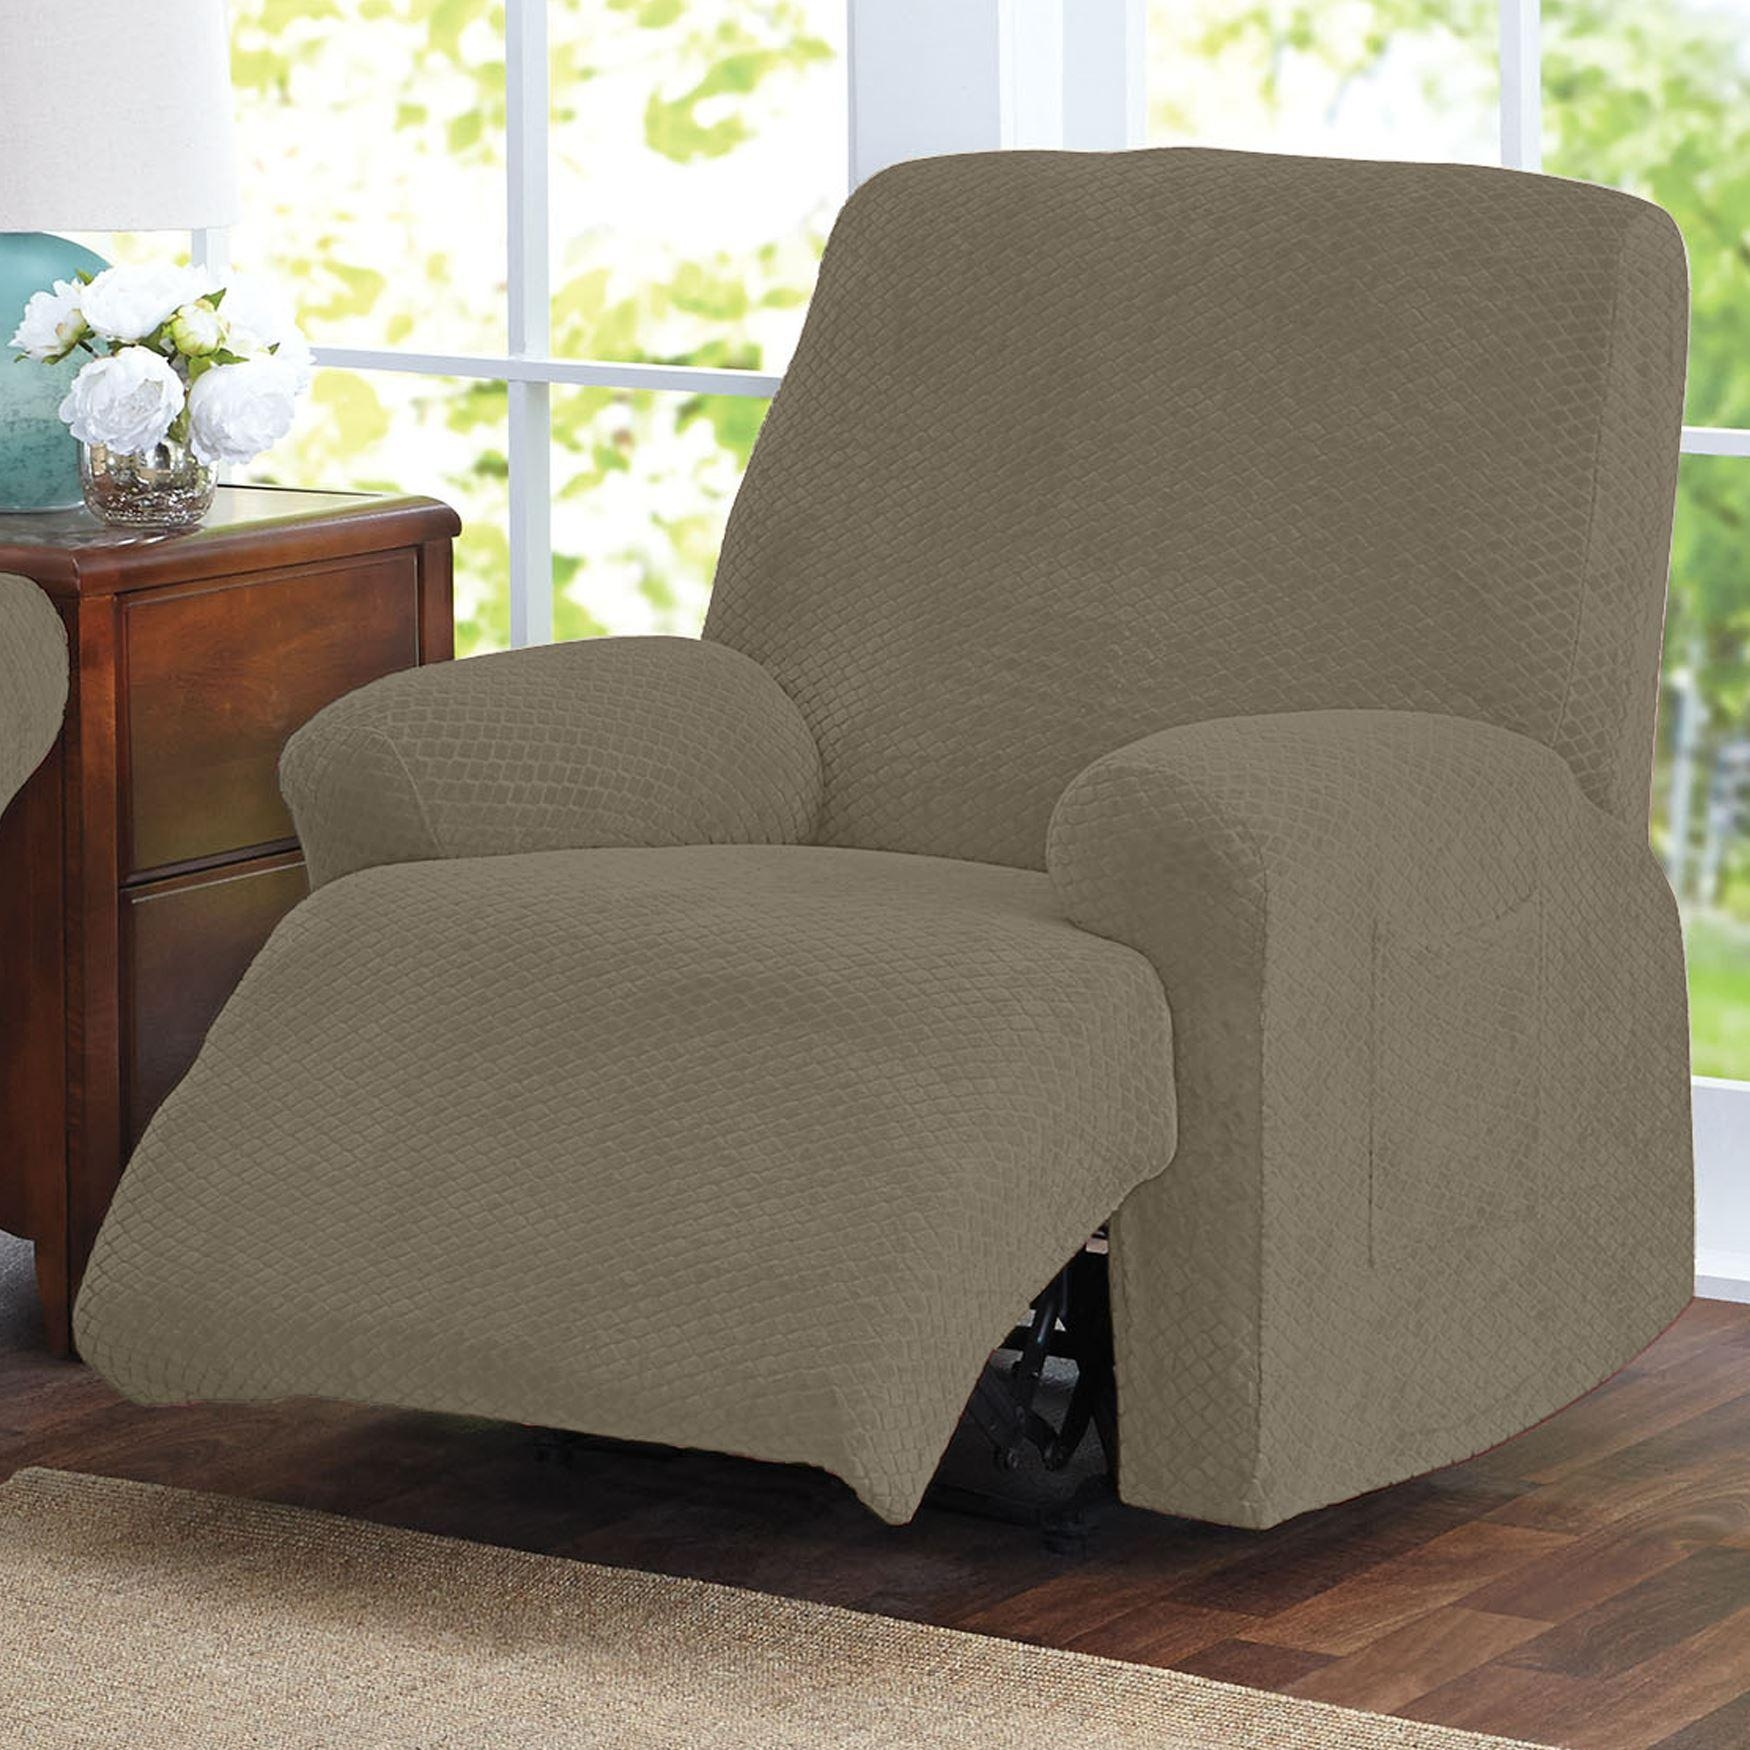 Furniture: Sofa Recliner Covers | Couch Covers For Reclining Sofas Intended For Slipcover For Reclining Sofas (View 14 of 20)